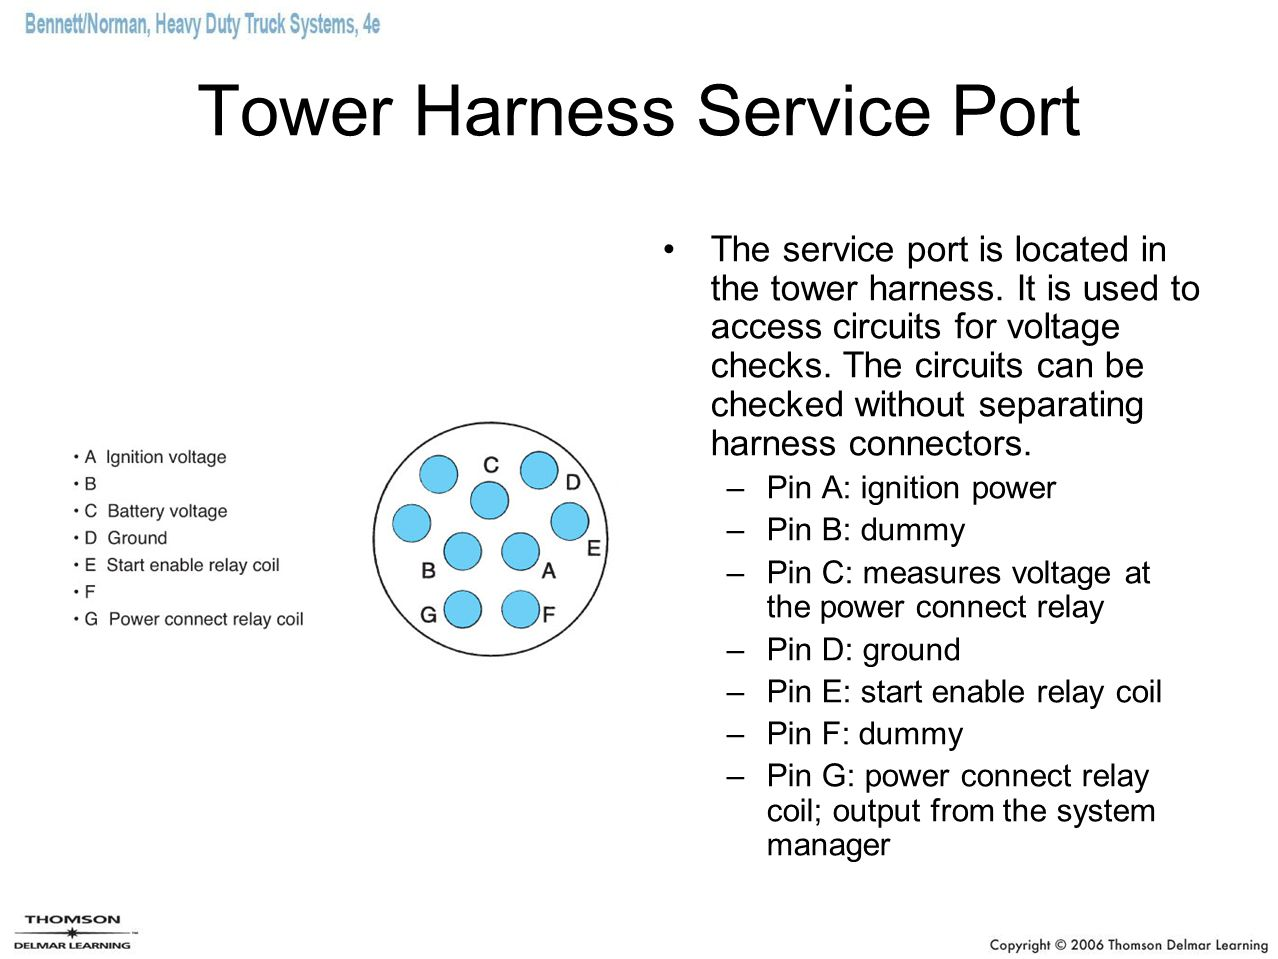 Tower Harness Service Port